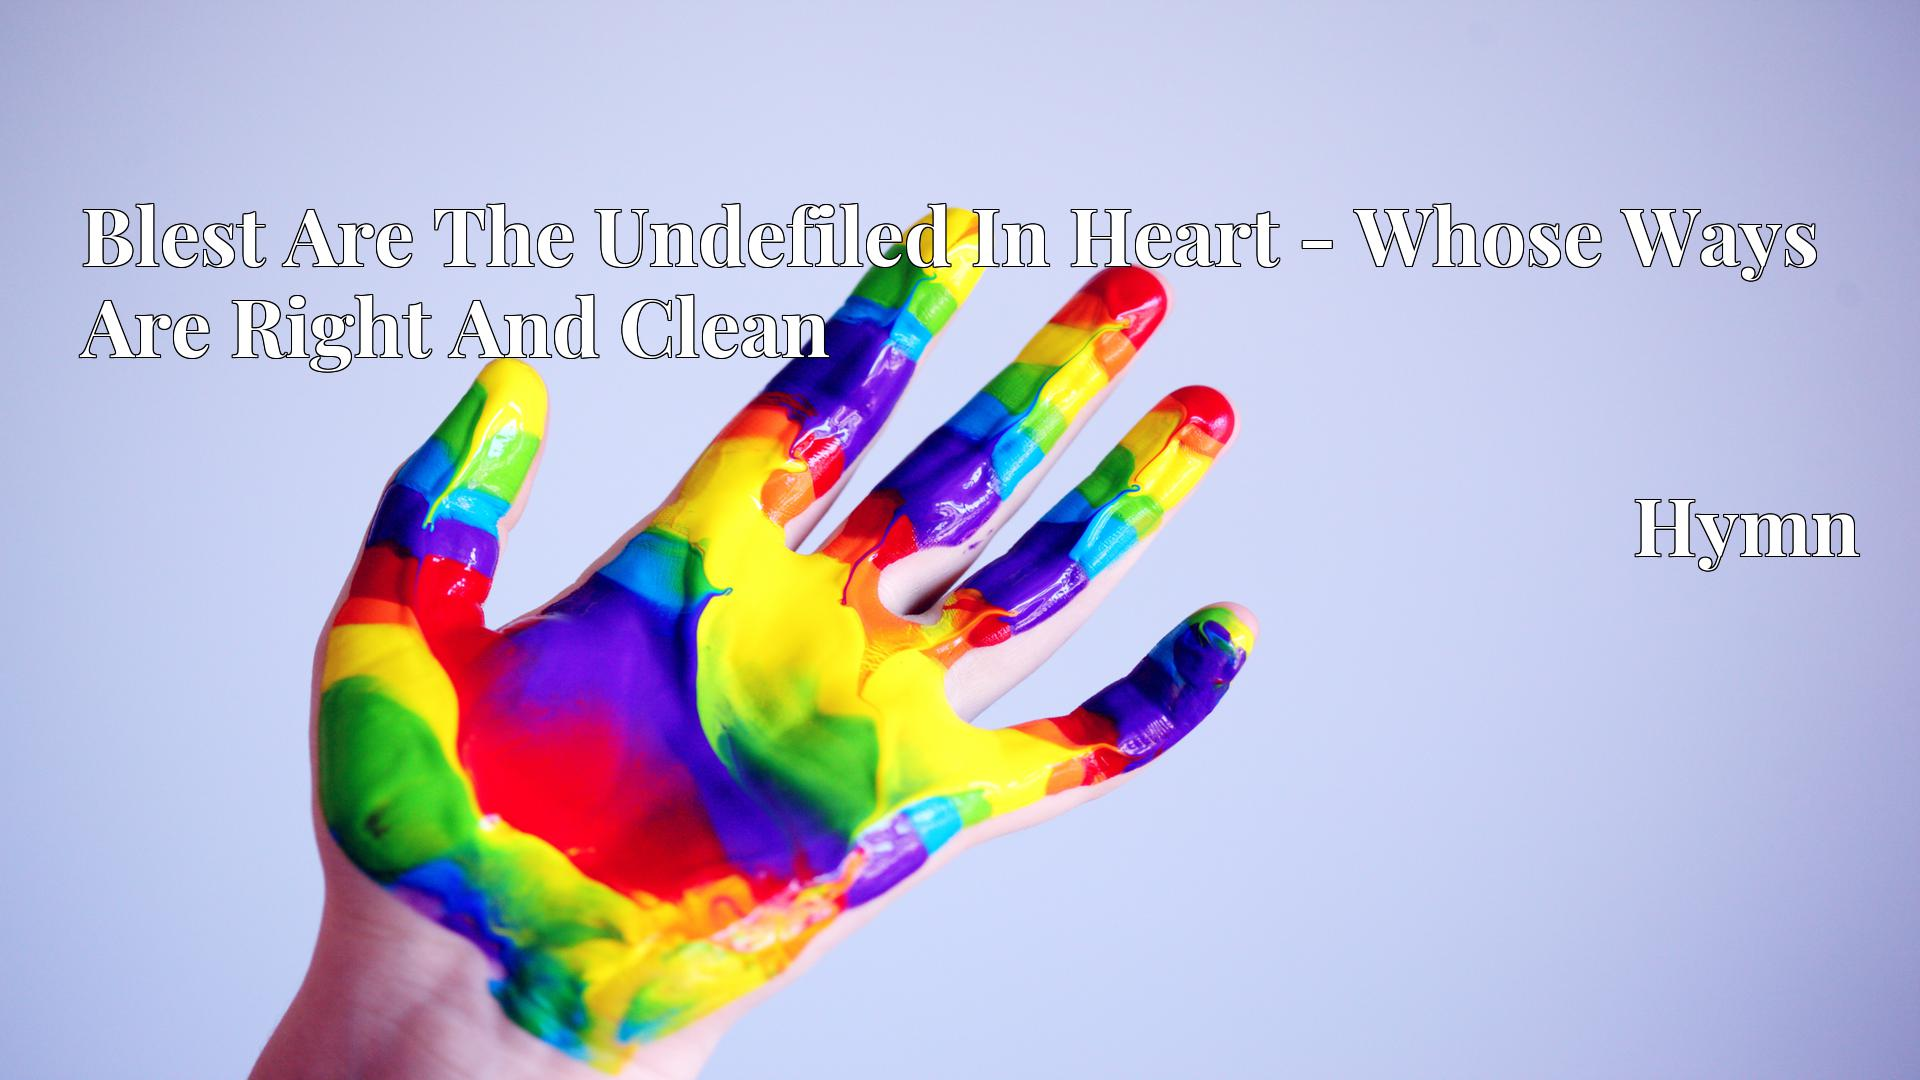 Blest Are The Undefiled In Heart - Whose Ways Are Right And Clean - Hymn